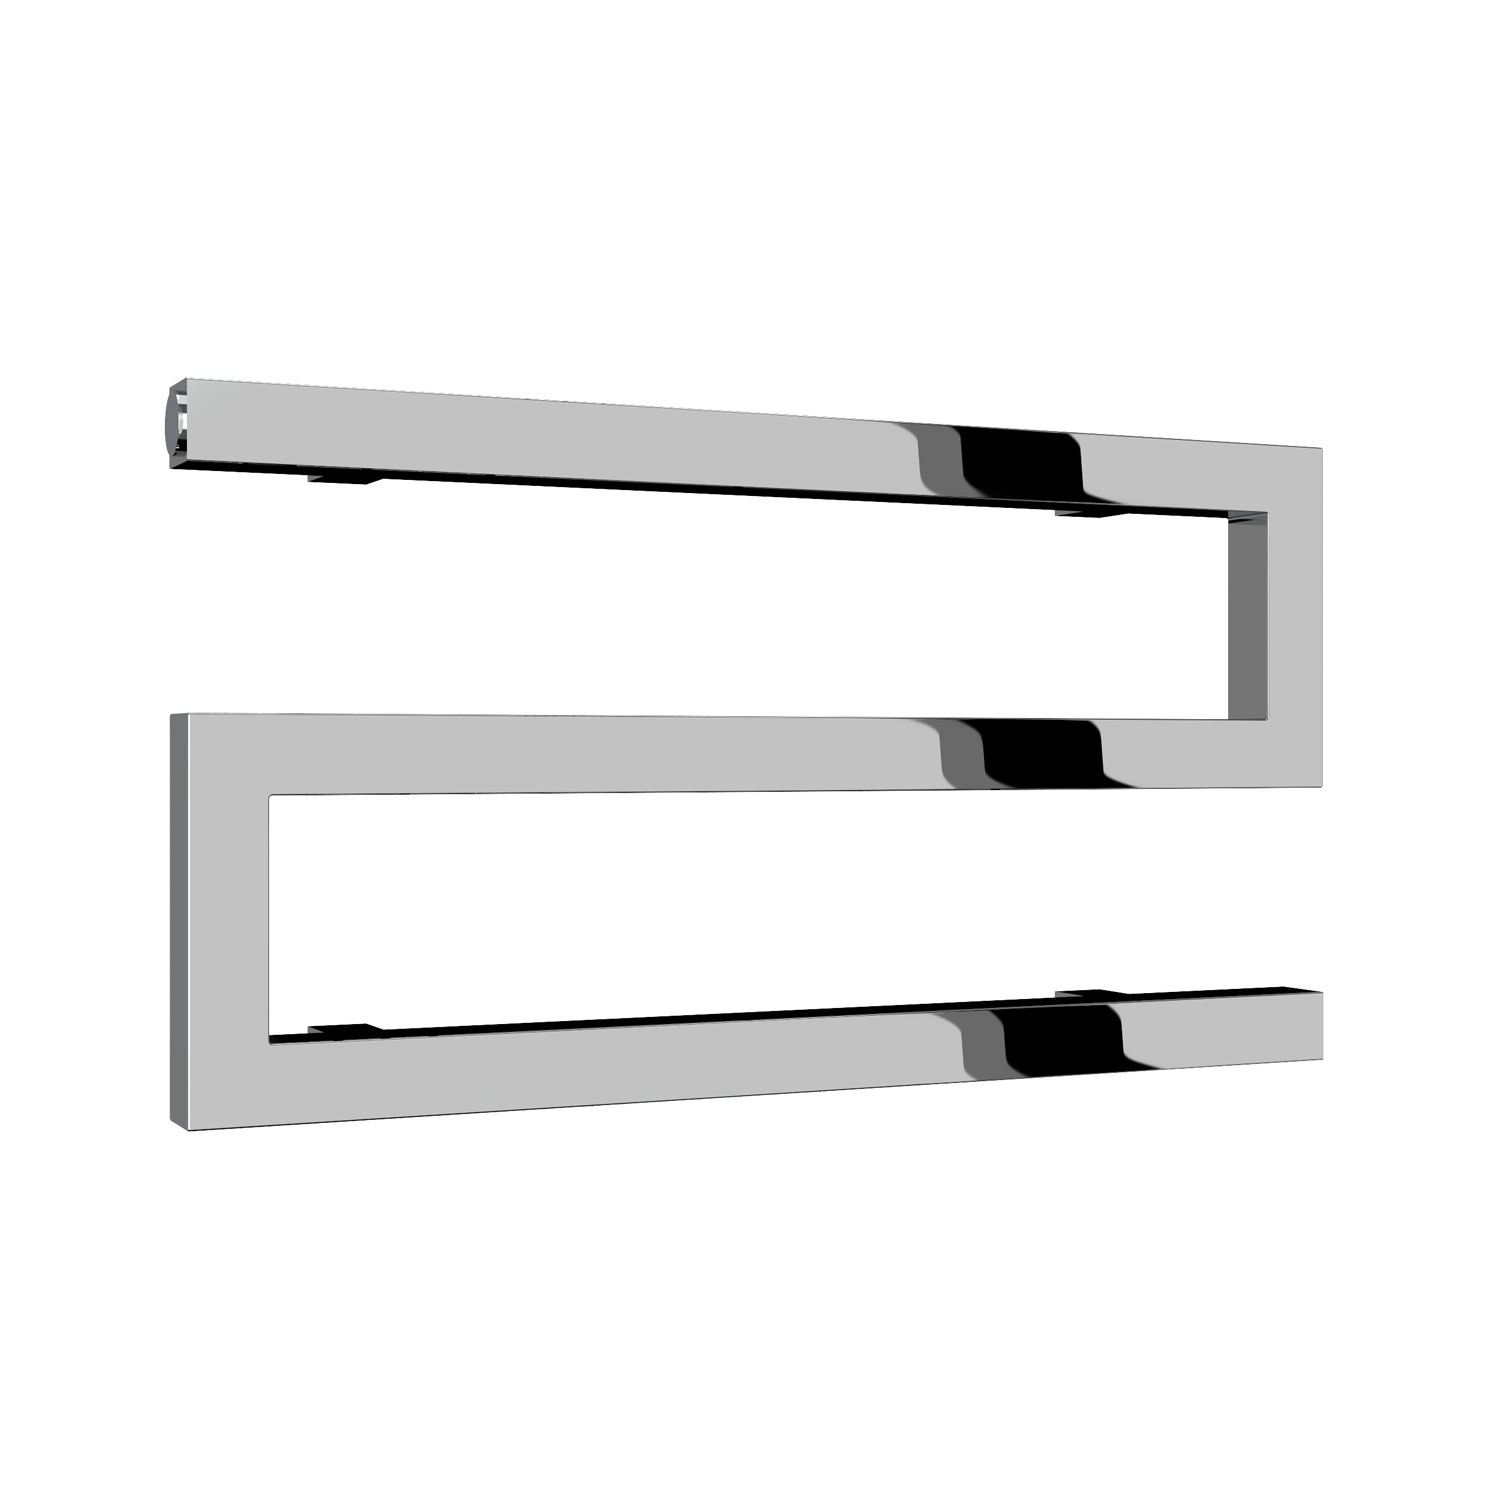 Reina Serpe Designer Heated Towel Rail 270mm H x 500mm W Chrome-0